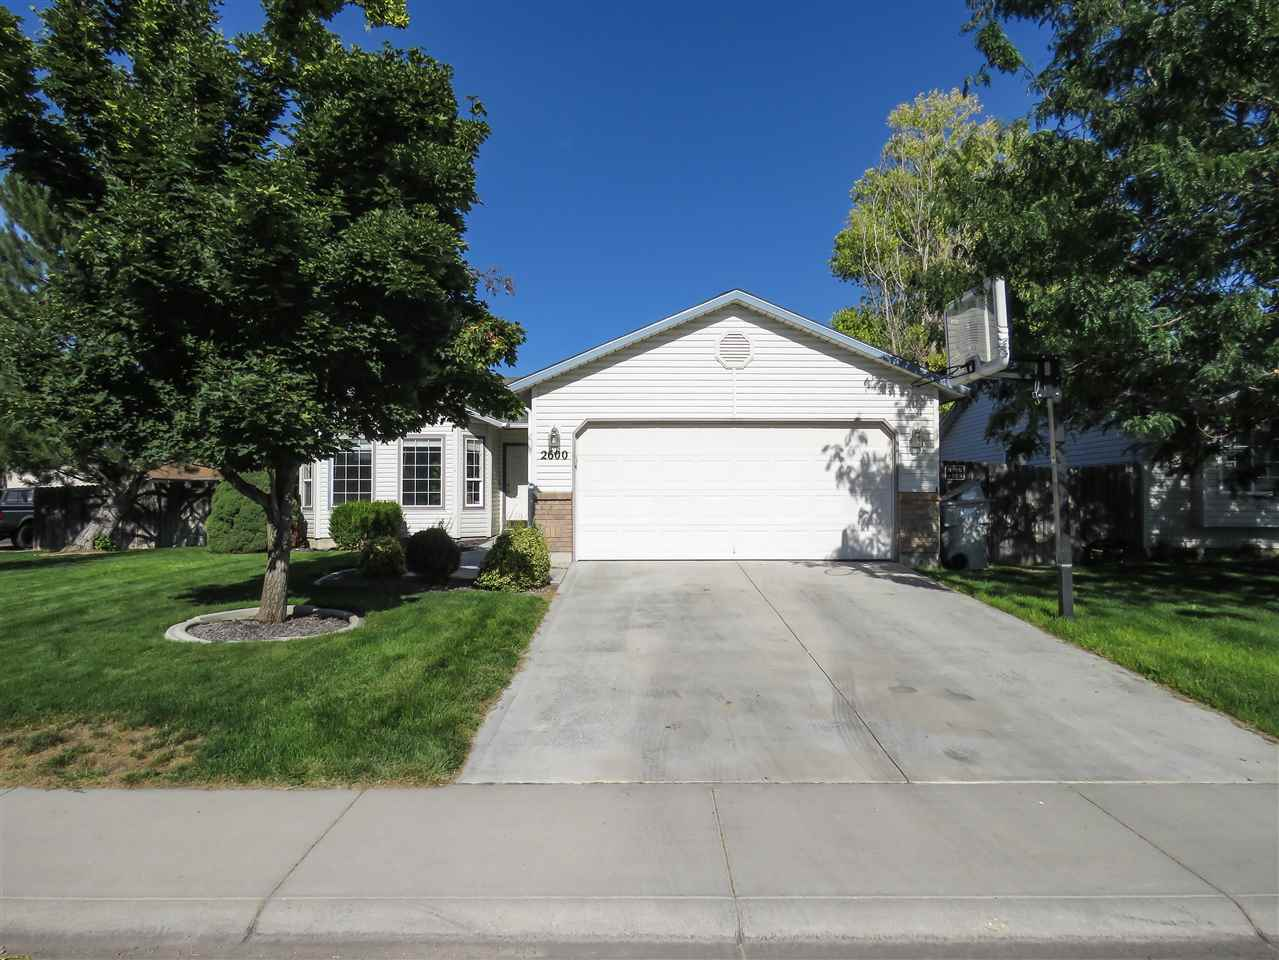 2600 S Stonehedge Dr., Nampa ID 83686